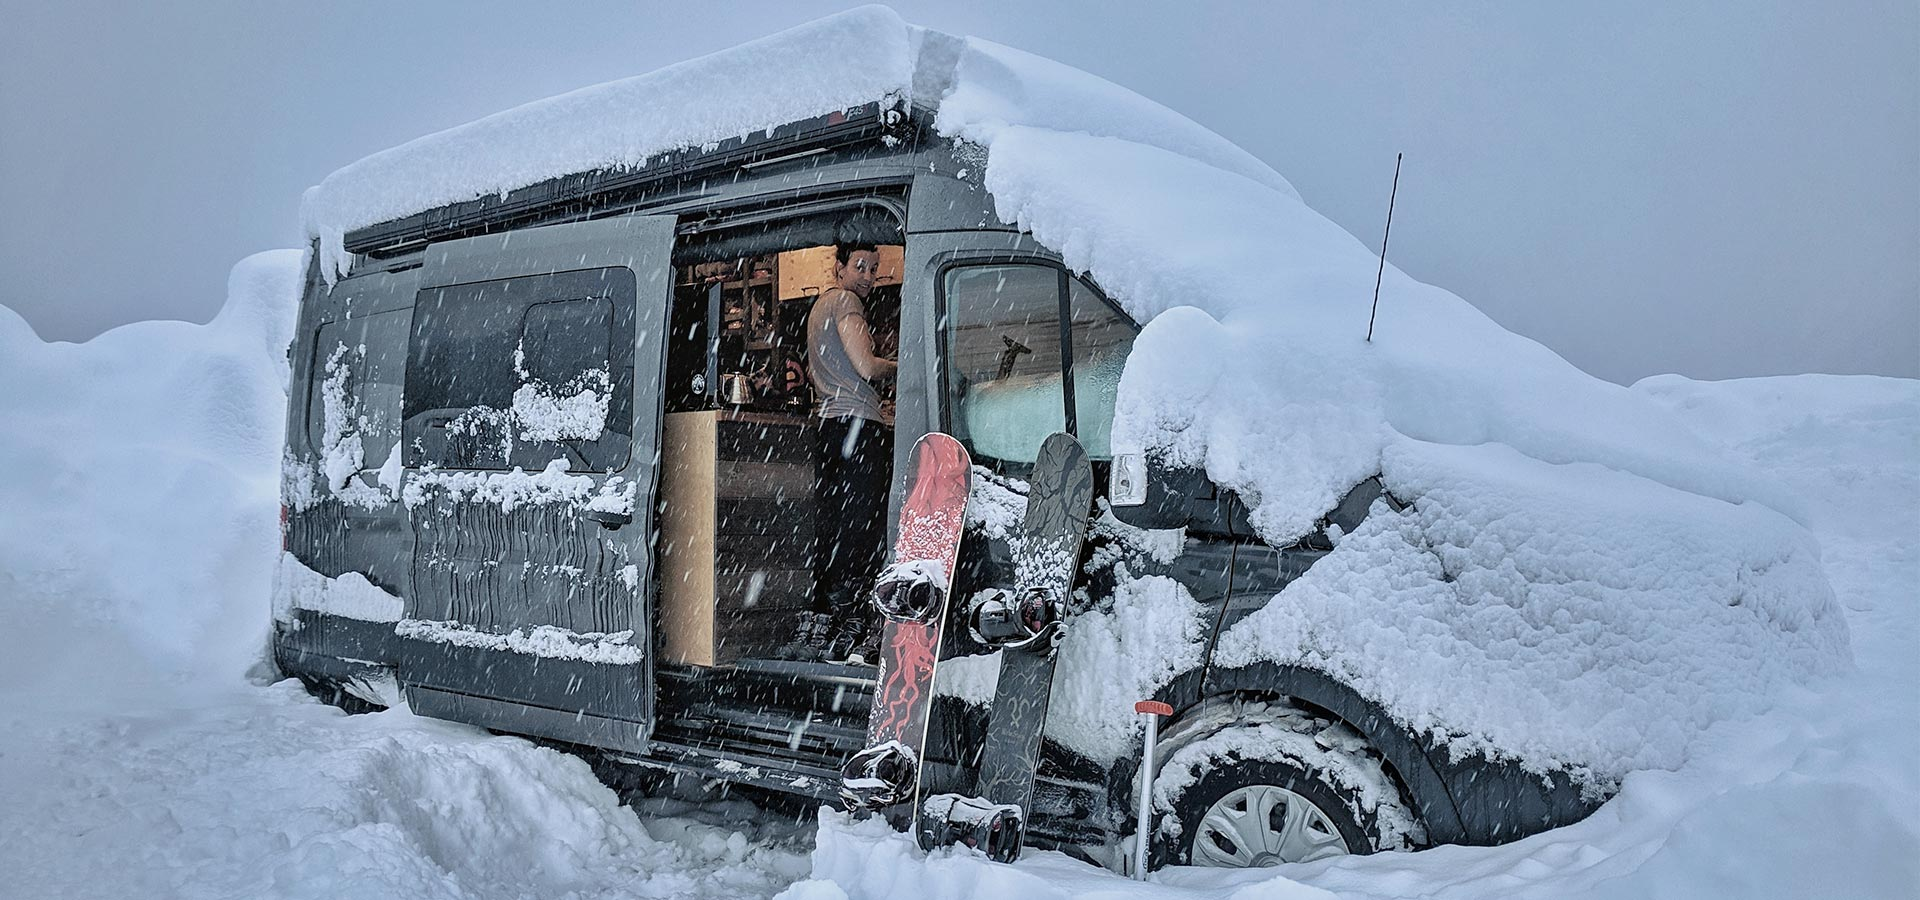 Image result for van life winter instagram""